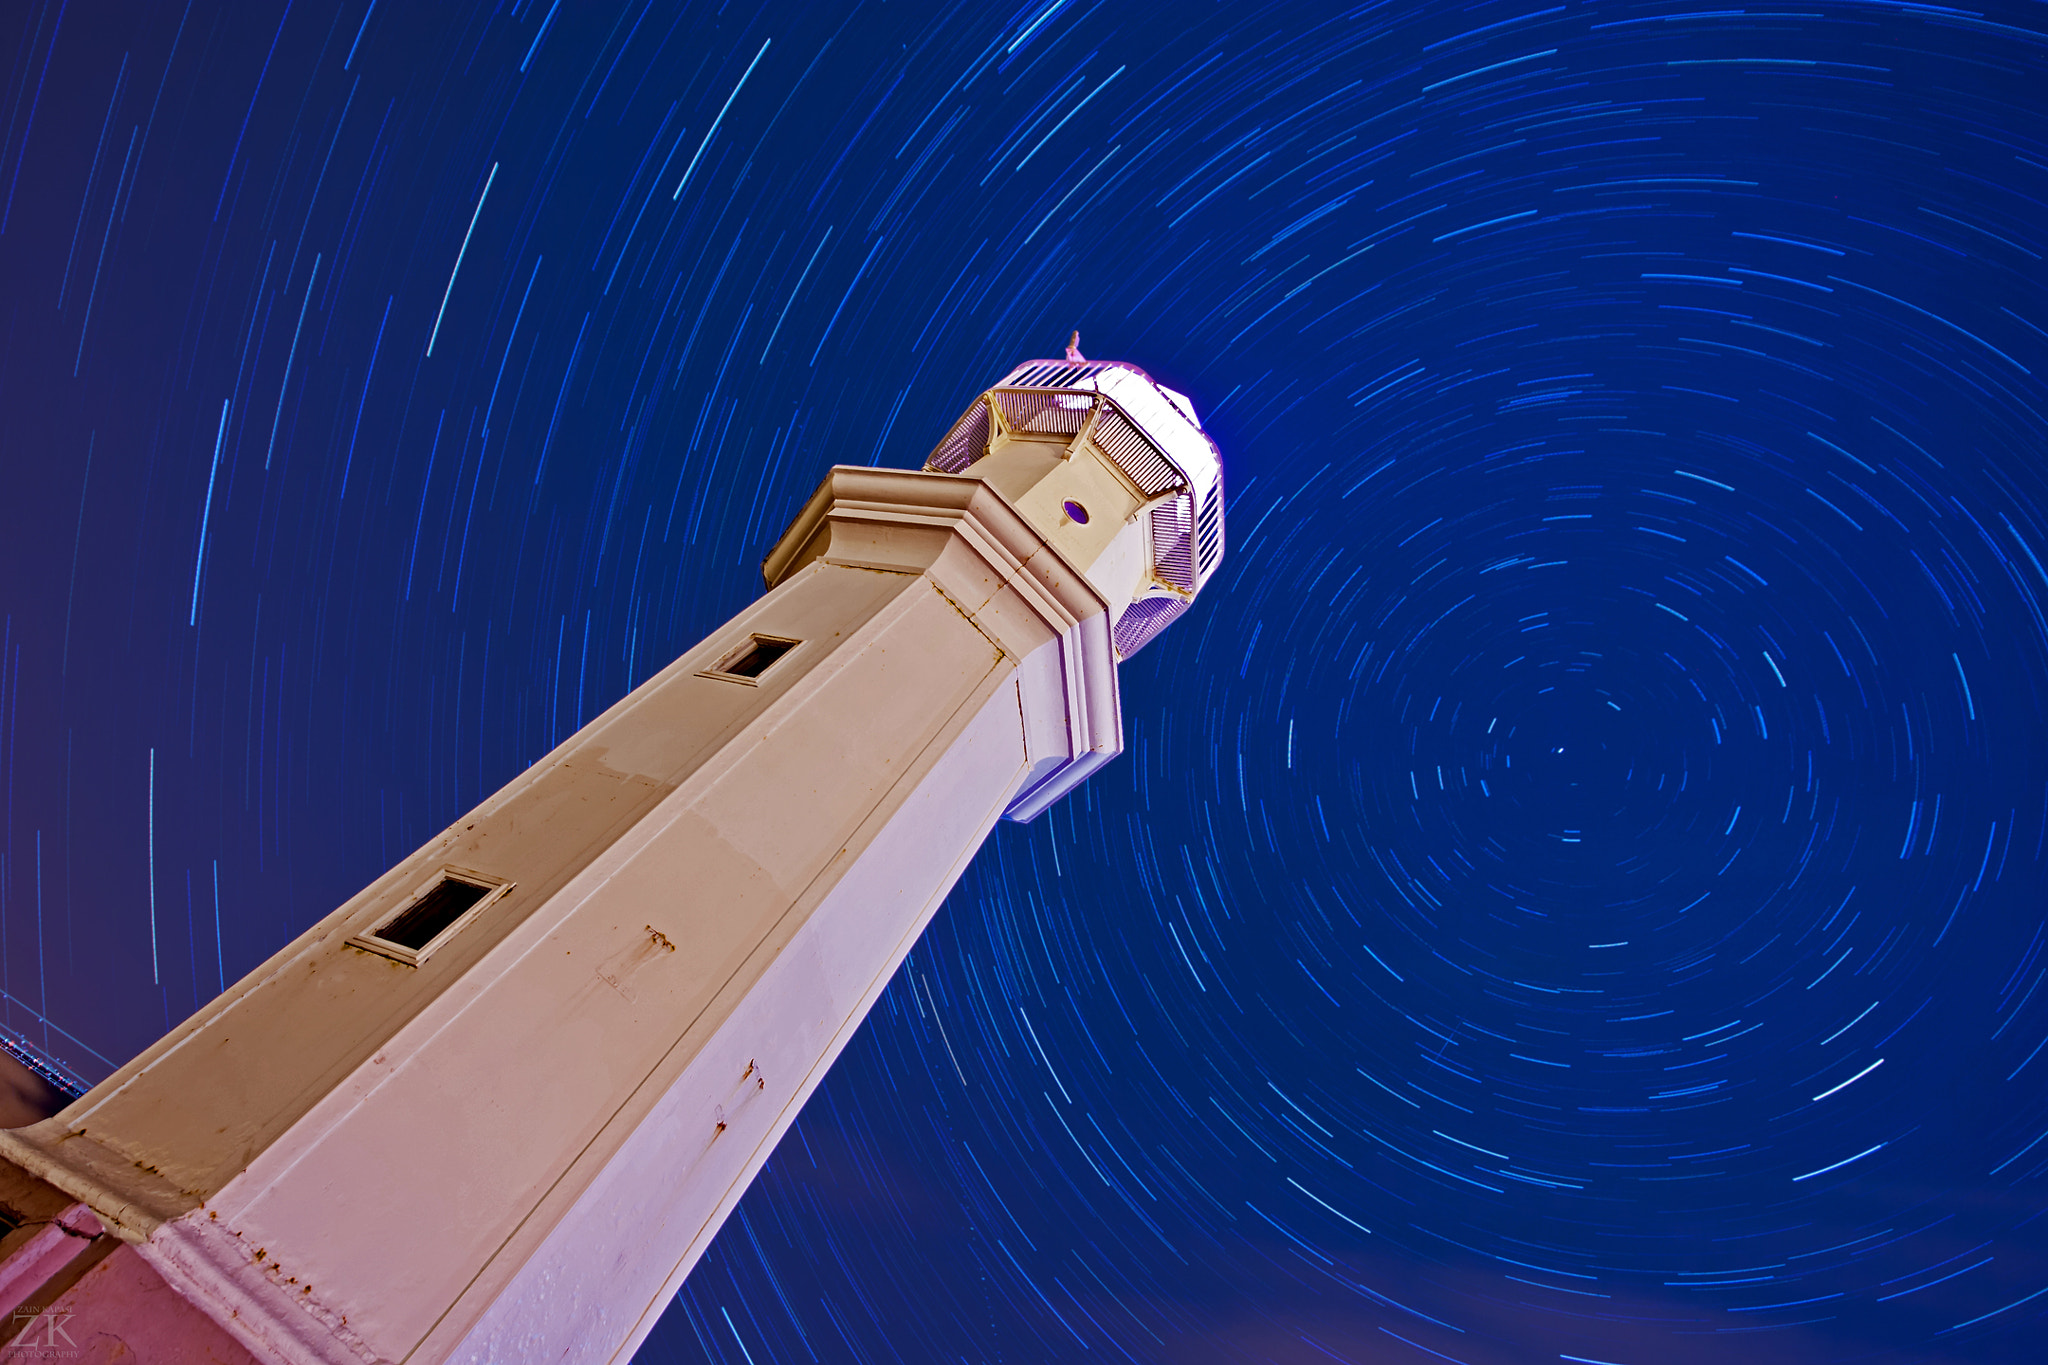 Photograph Newhaven Lighthouse Star Trails by Zain Kapasi on 500px